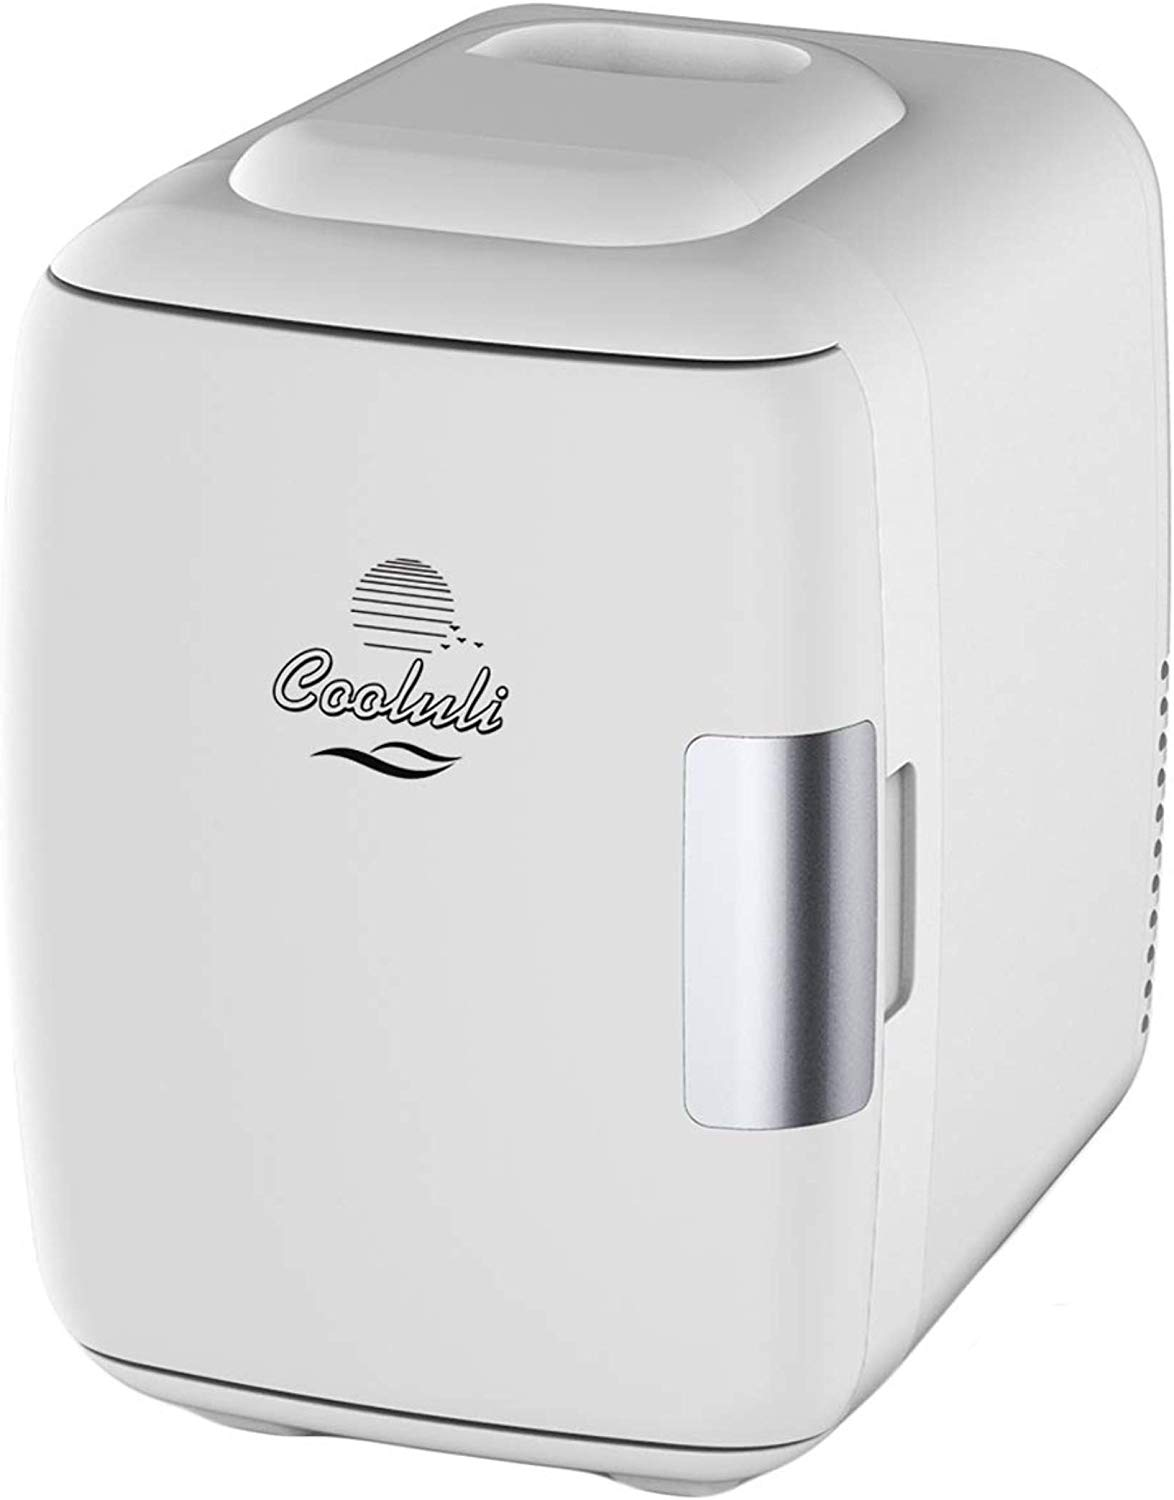 Cooluli Mini Fridge Electric Cooler and Warmer 4 Liter  6 Can ACDC Portable Thermoelectric System